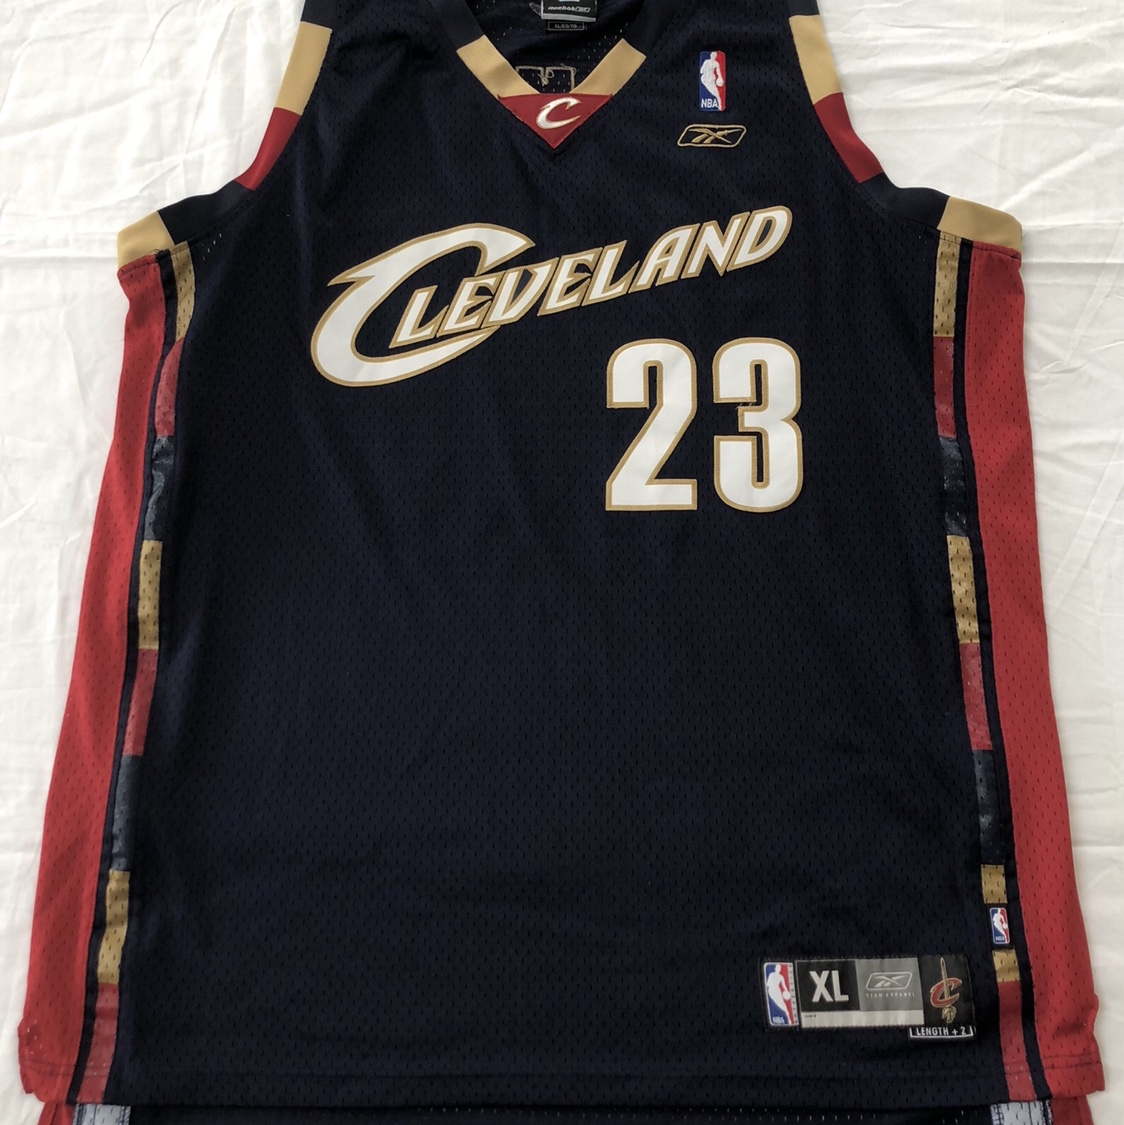 new product ad096 cc0c0 Cleveland Cavaliers LEBRON JAMES jersey. From the ...